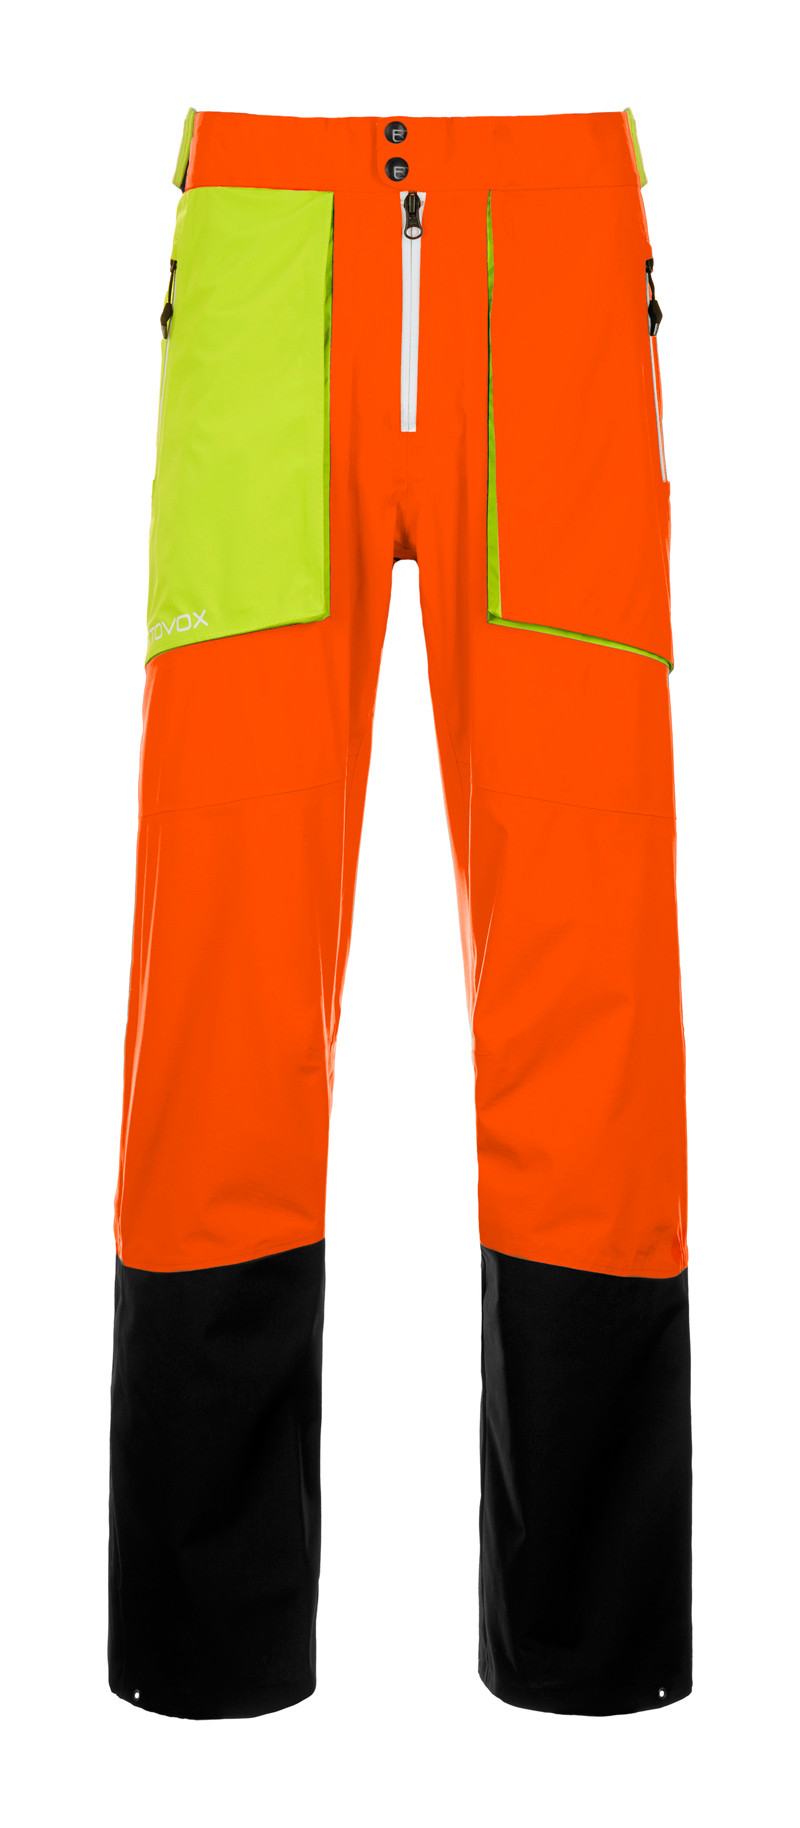 44afb5c0 Ortovox 3L [MI] Pants La Grave M Crazy Orange | Fjellsport.no